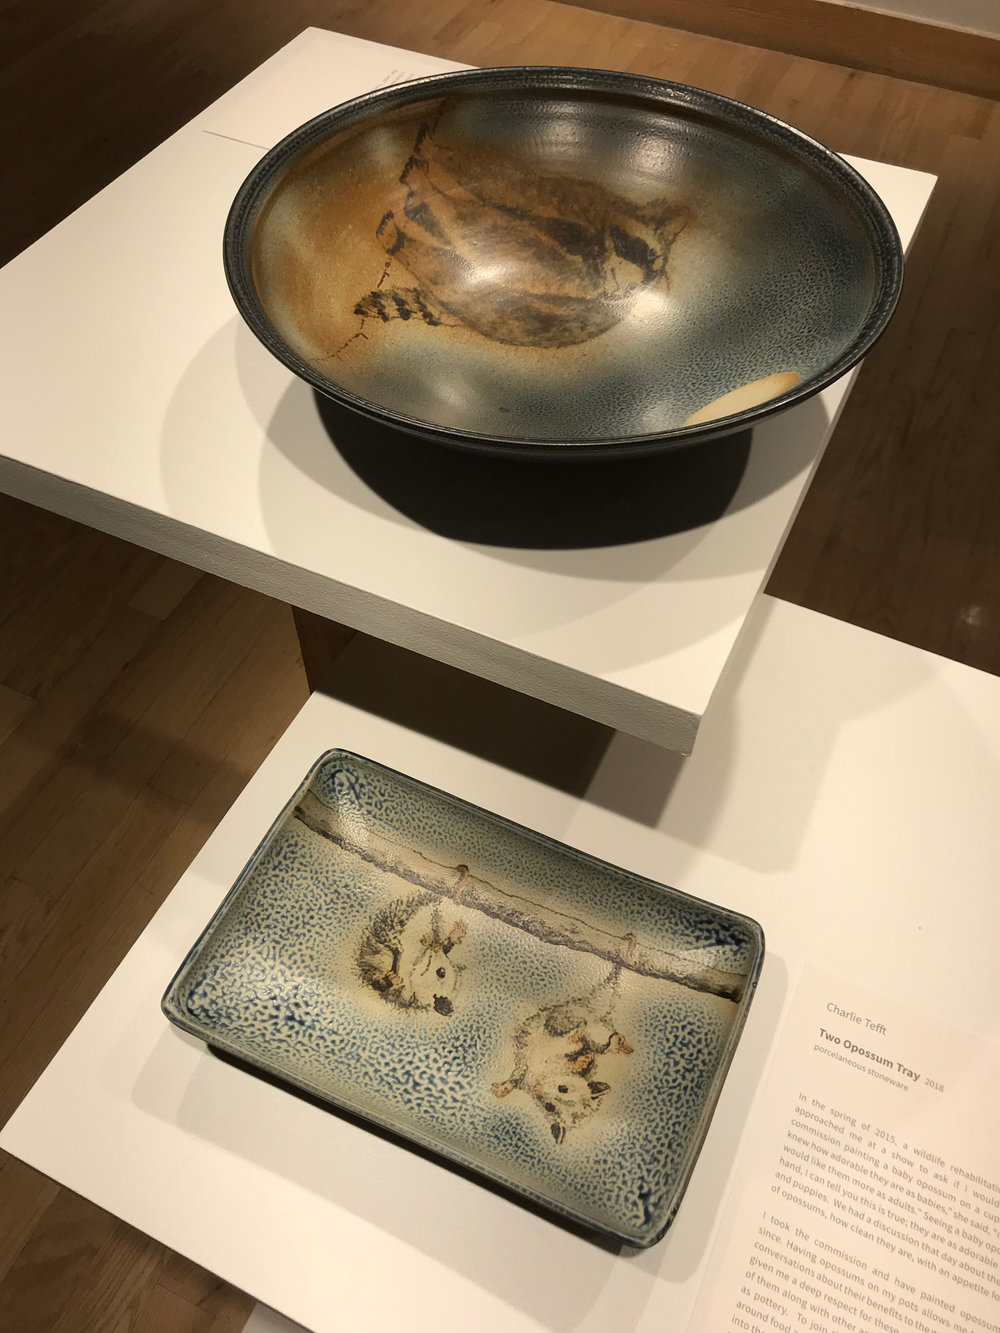 Two Oppossum Tray and Raccoon Moon by Charlie Teft